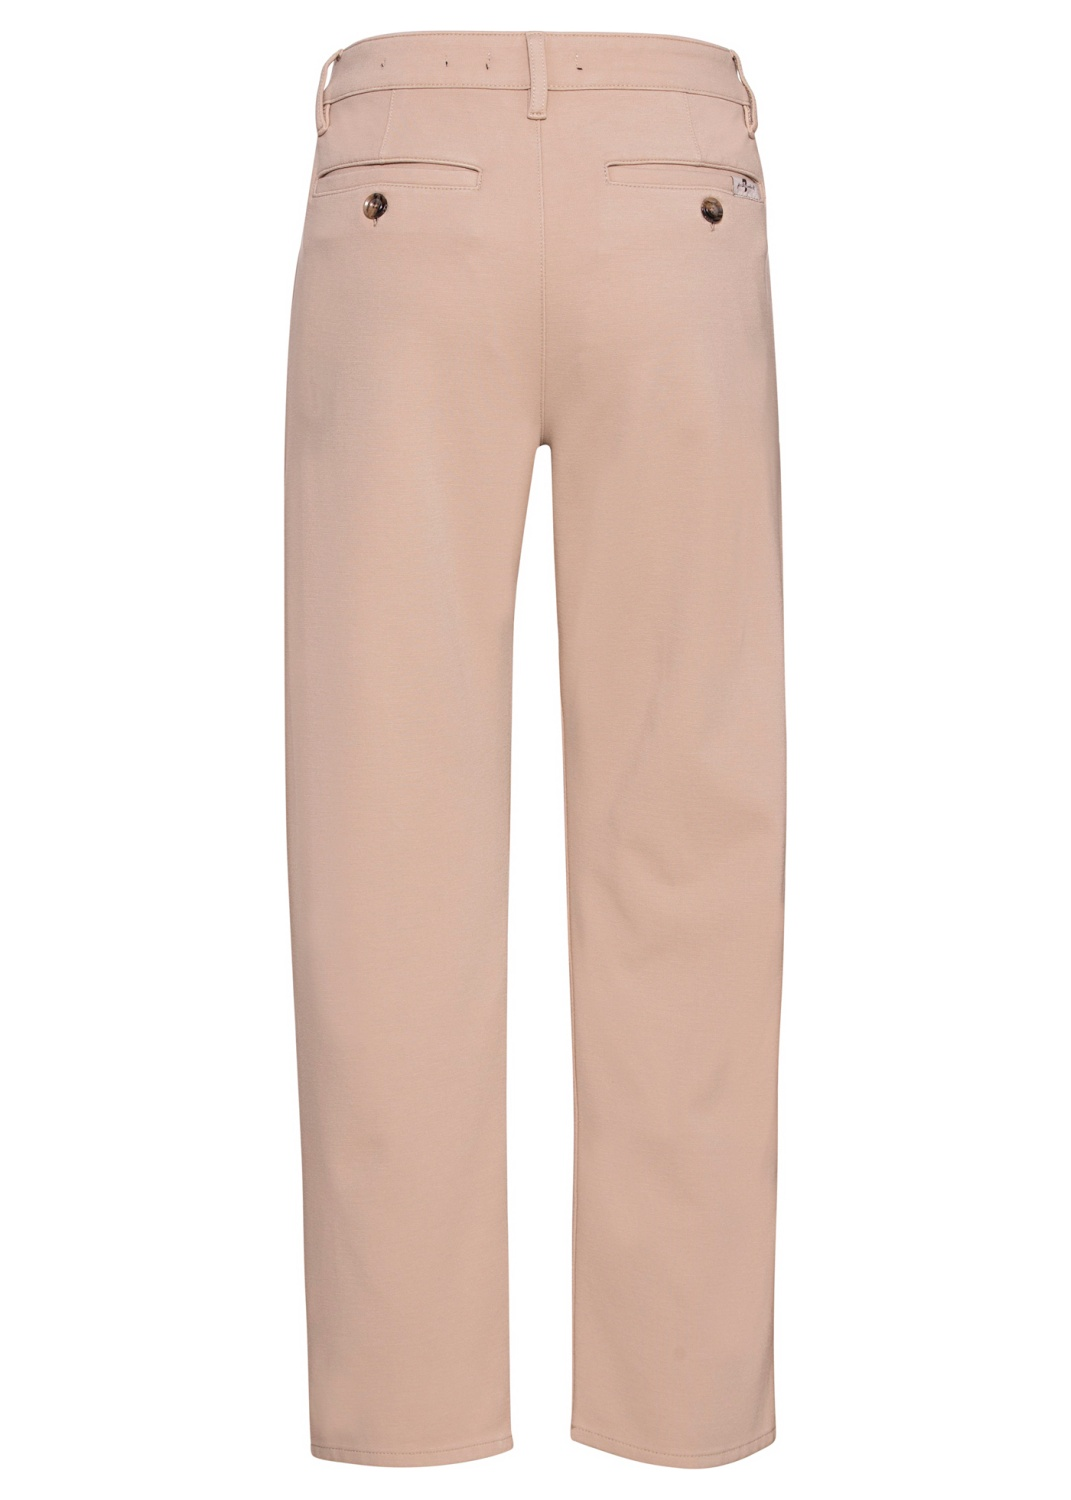 TRAVEL CHINO DOUBLE KNIT  SANDCASTLE image number 1